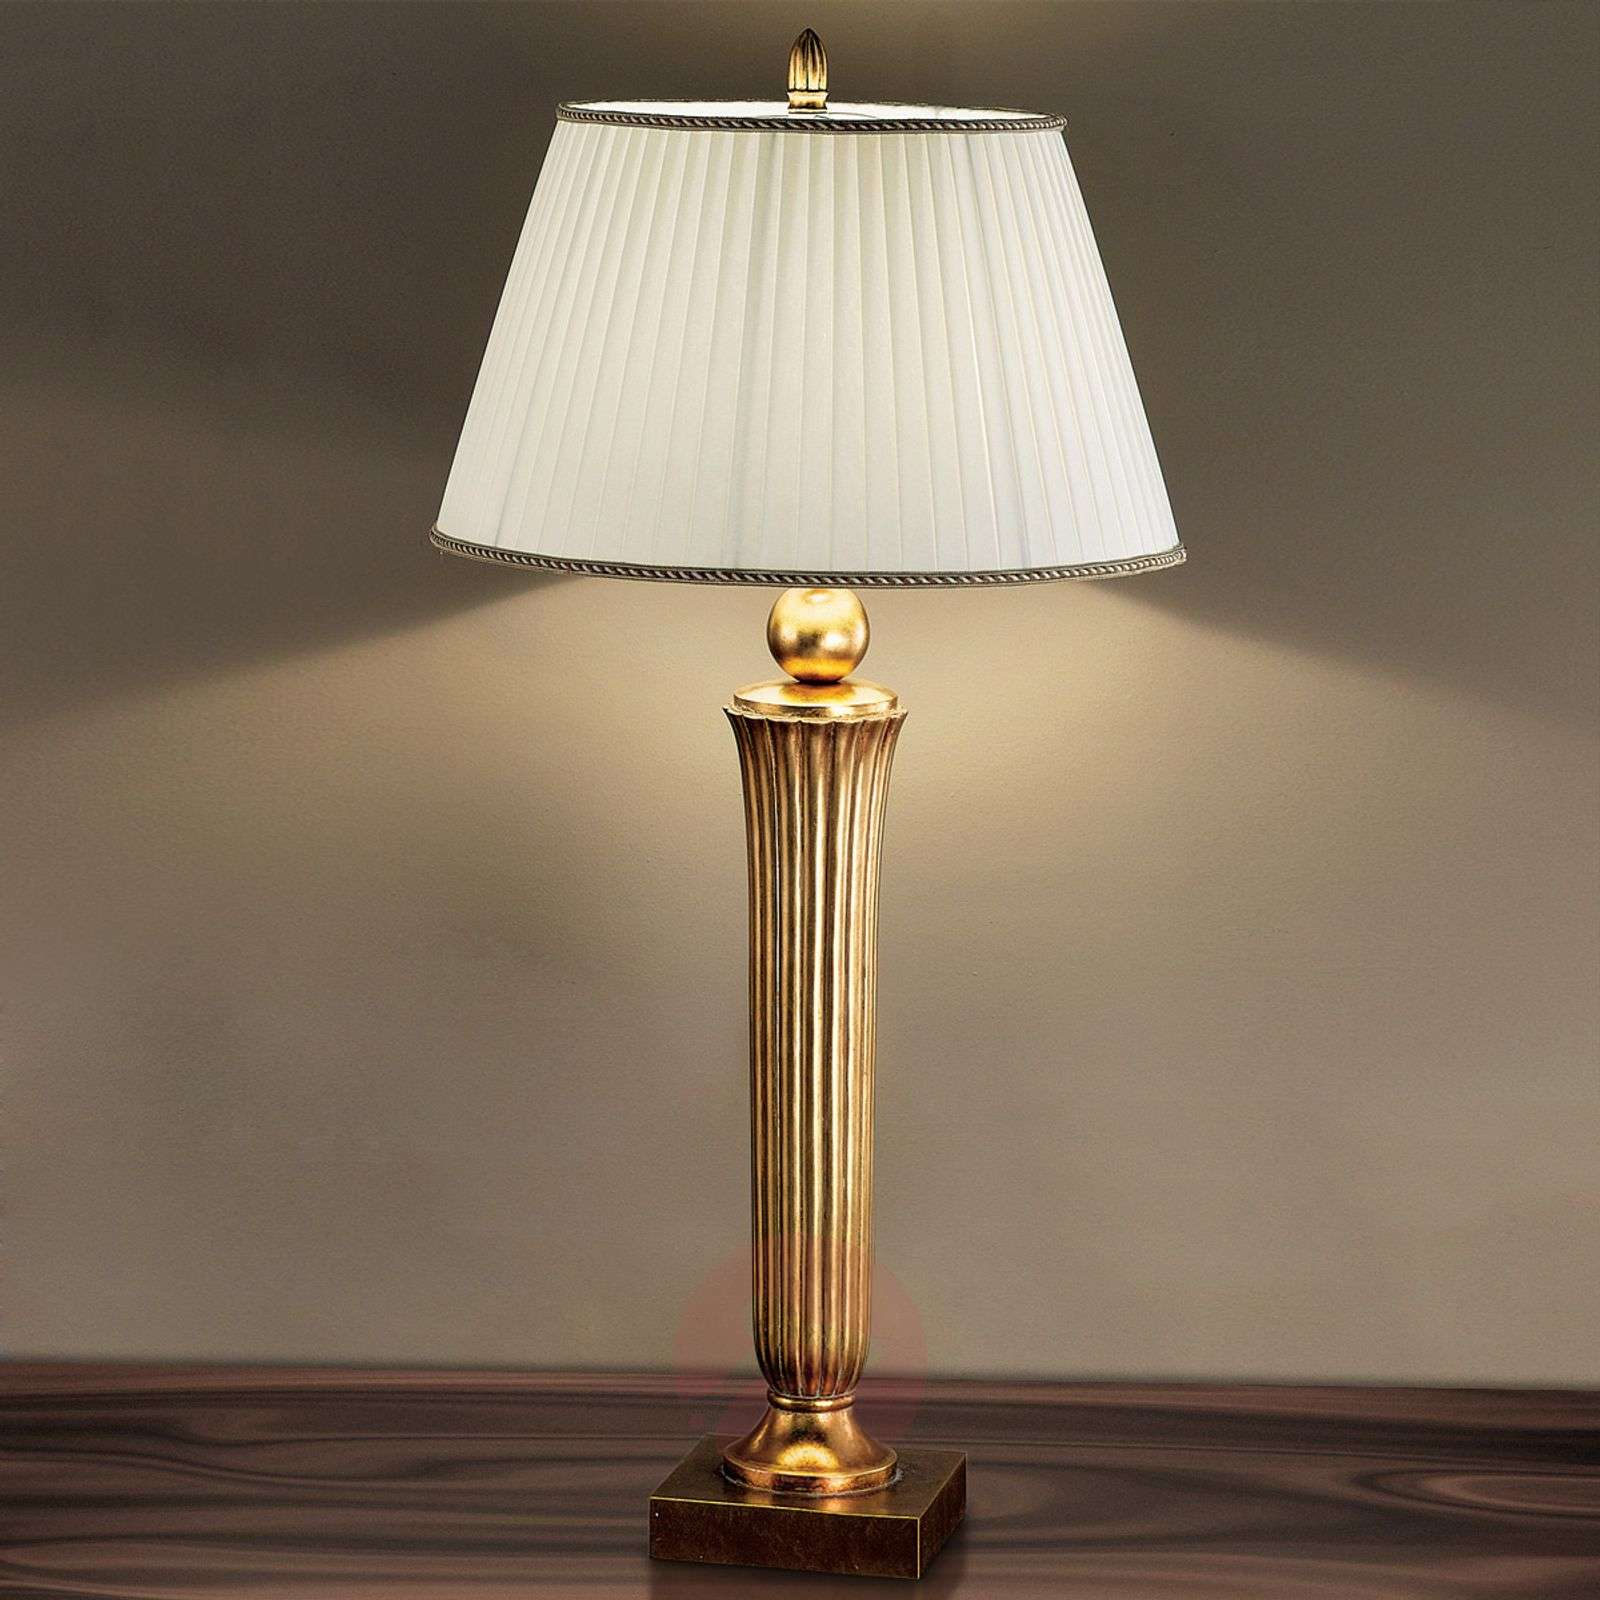 Janni Floor Lamp Charming Warm Gold Tone-7254285-01